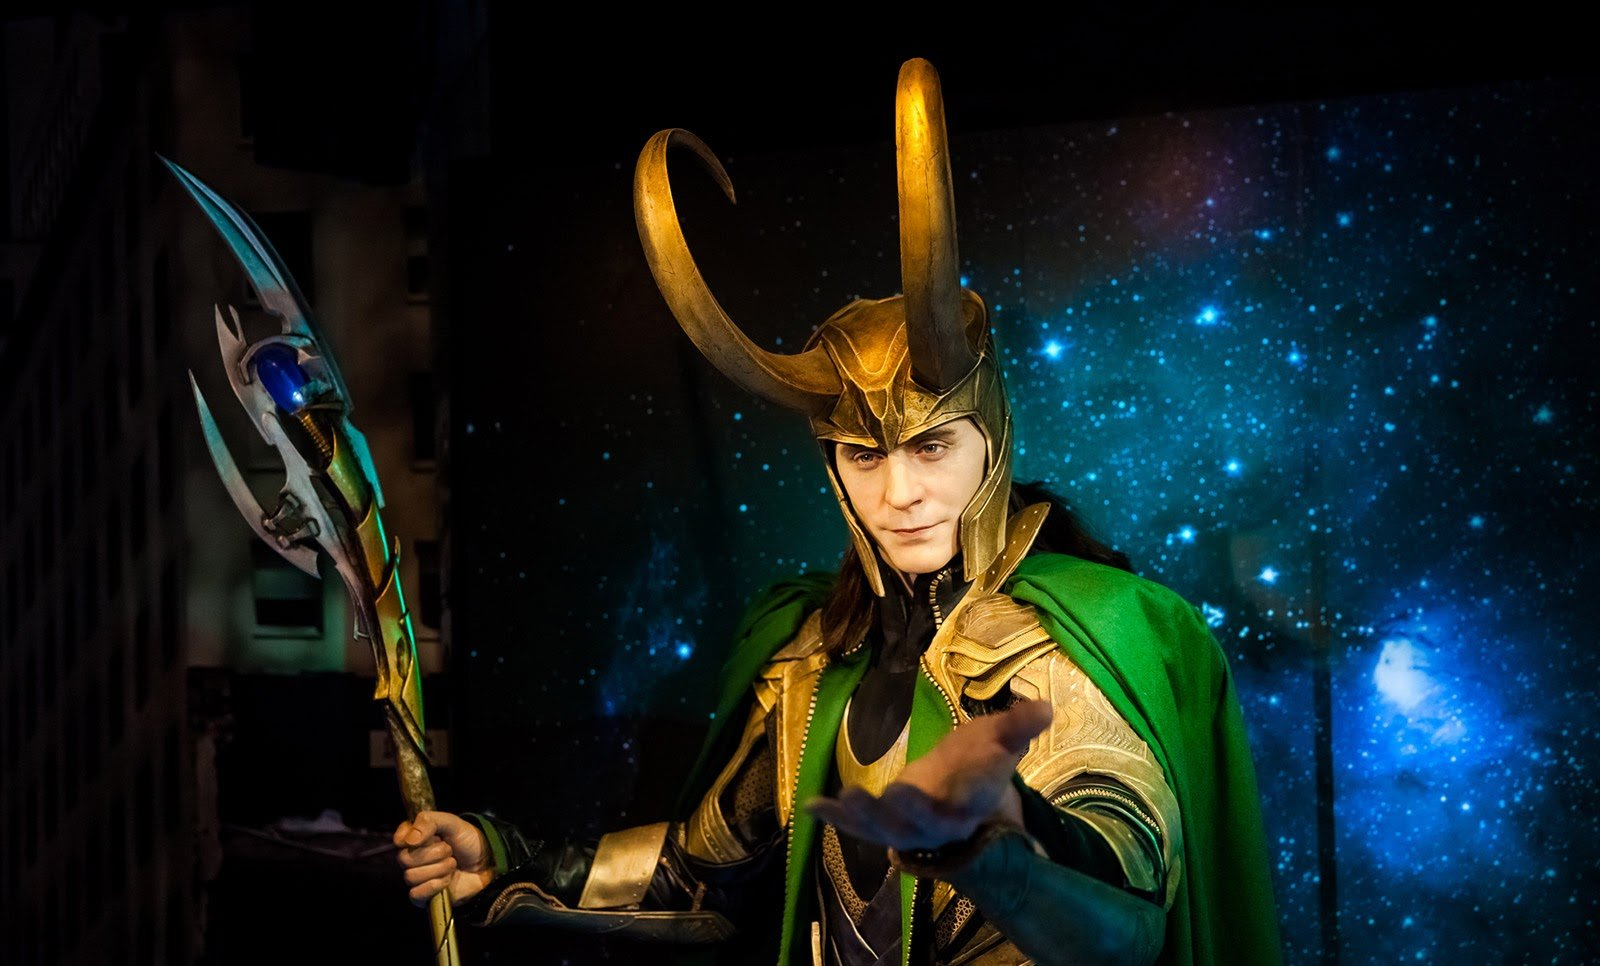 loki depiction in marvel movies